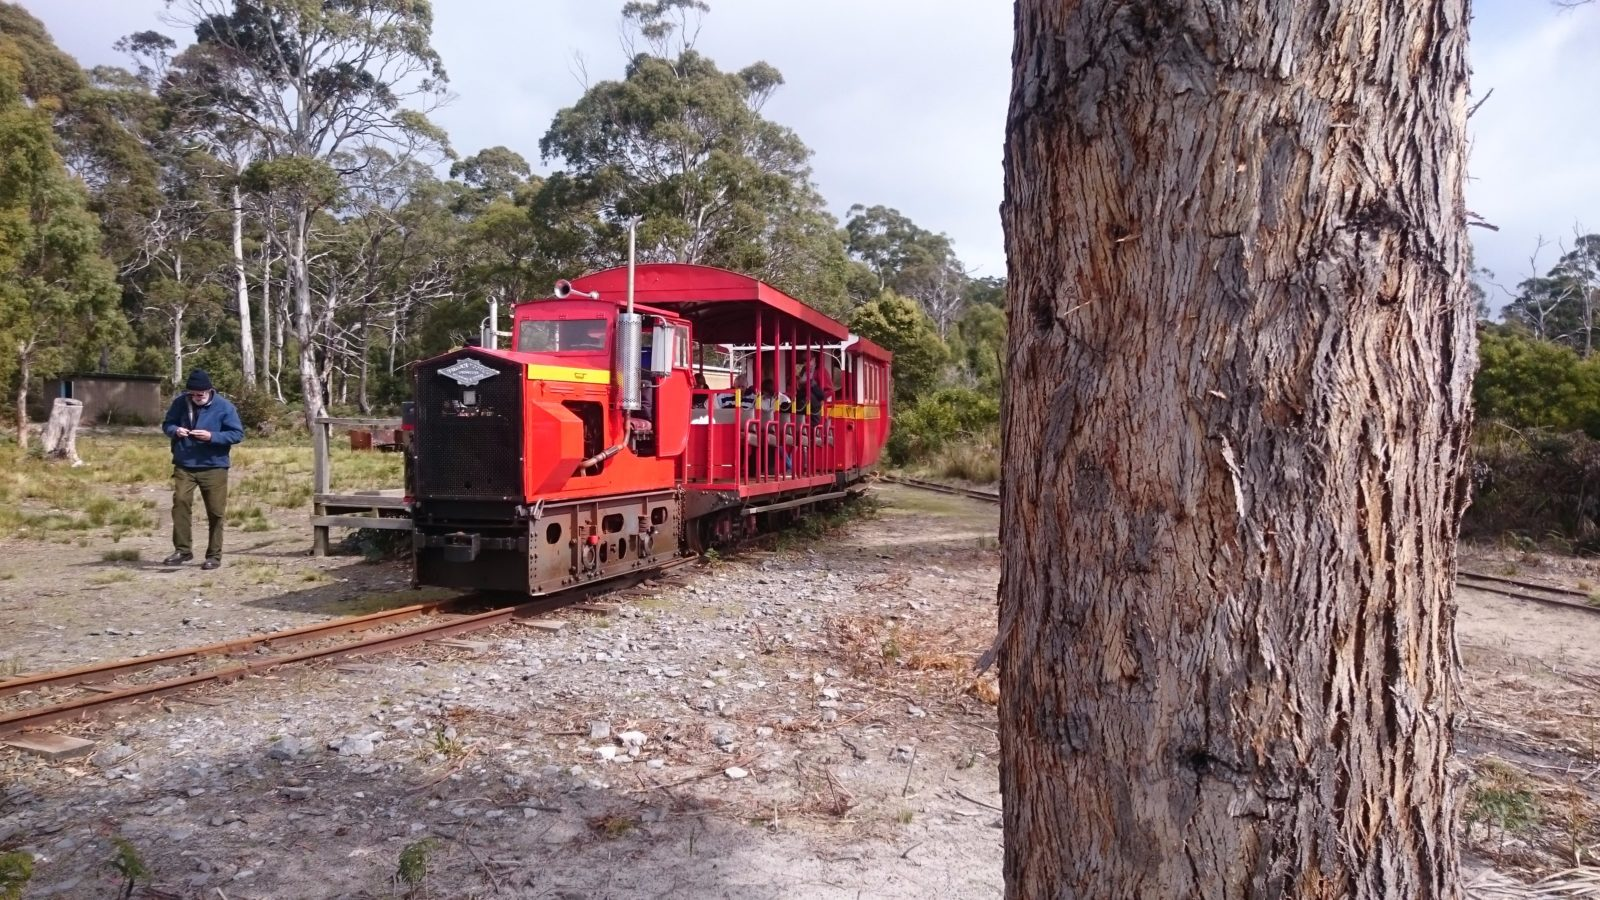 Ida Bay Railway & Cafe (Tour)